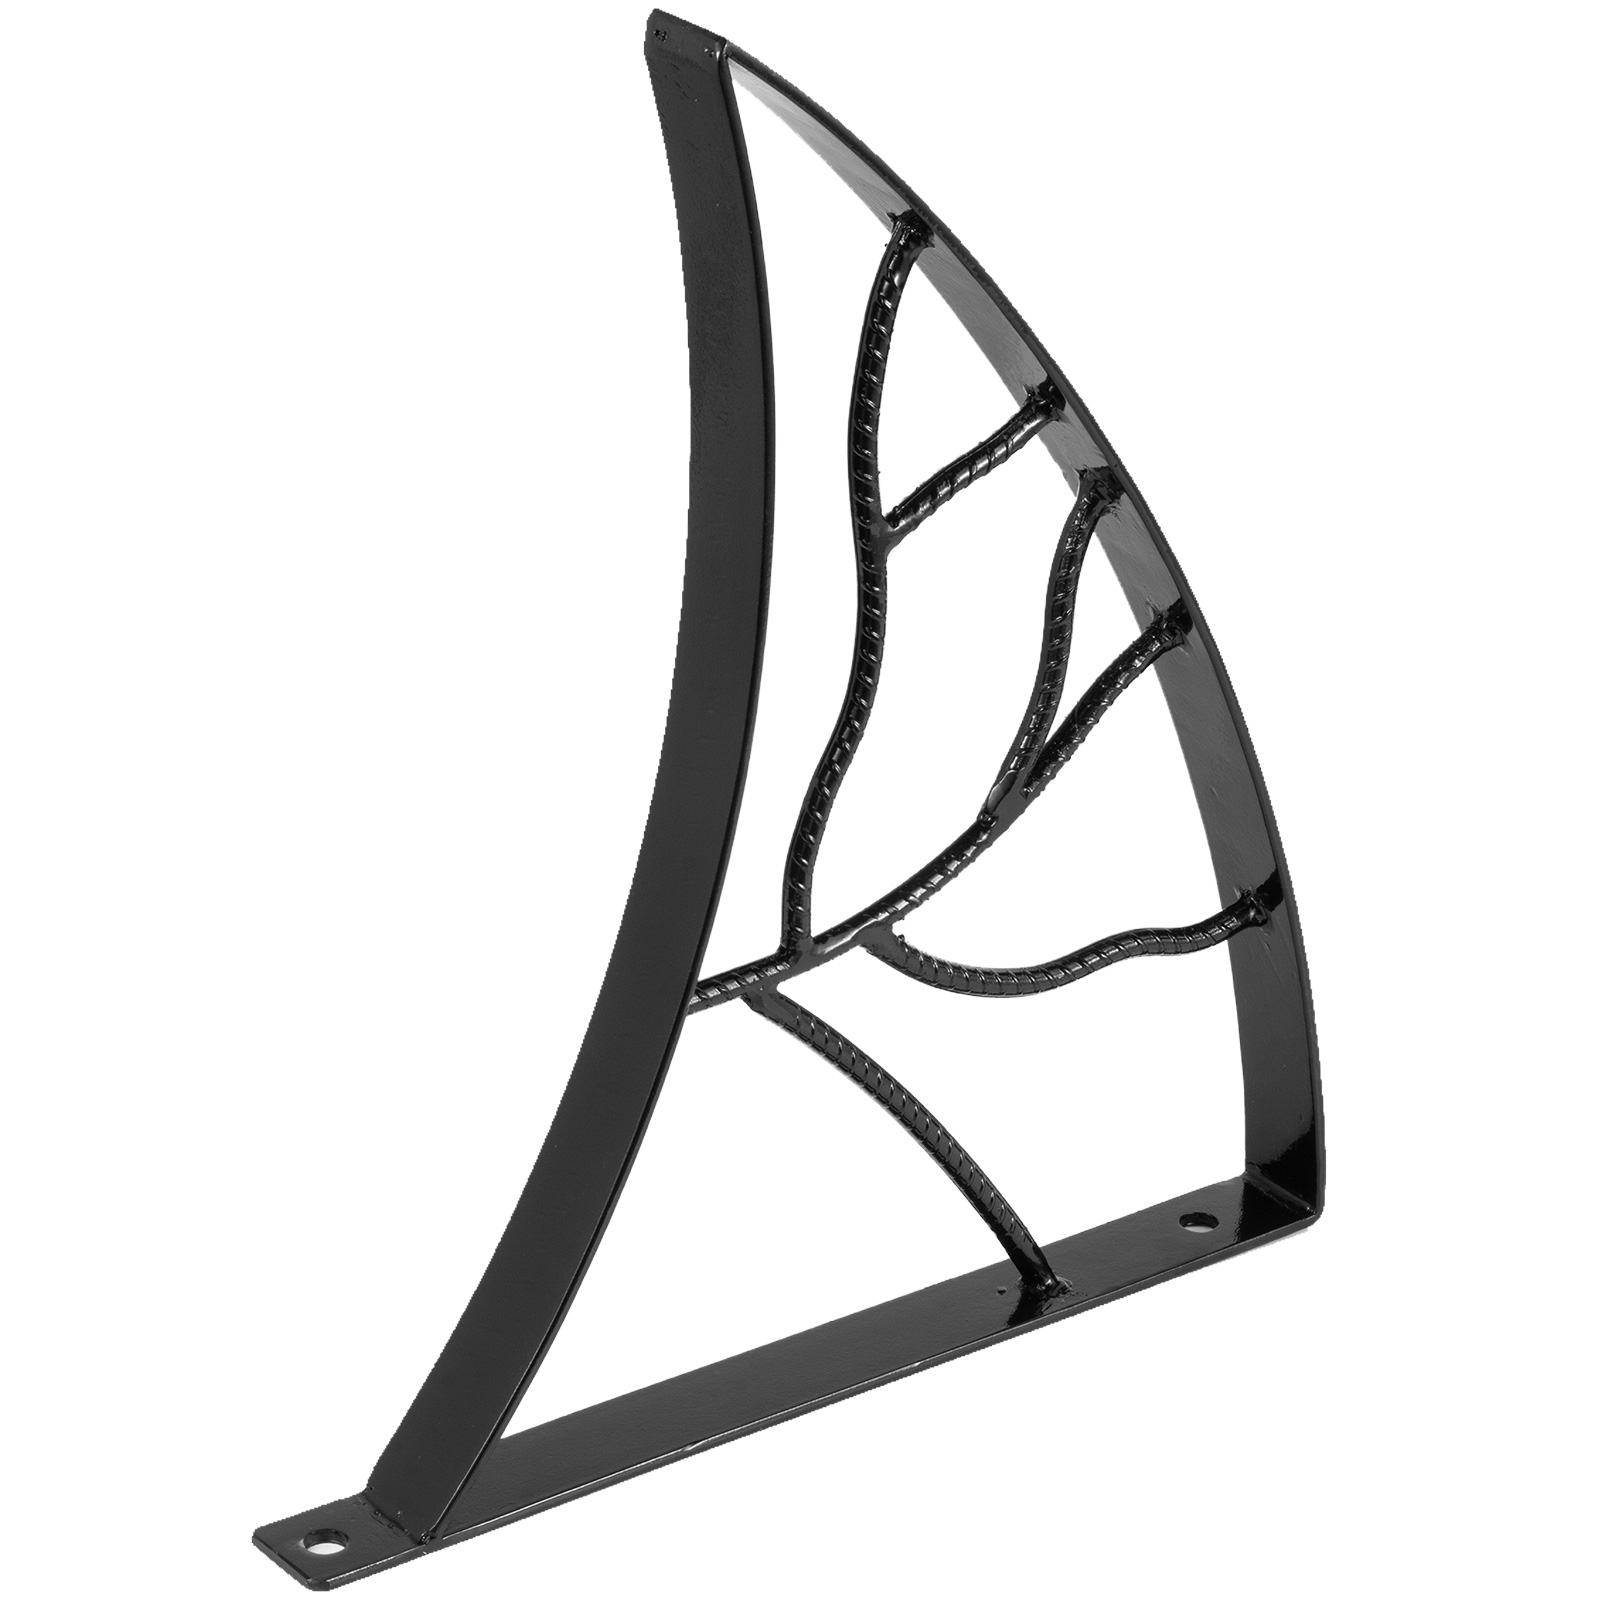 Handrails-for-Outdoor-Step-Wrought-Iron-Handrail-20-034-Length-Porch-Deck-Railing thumbnail 47